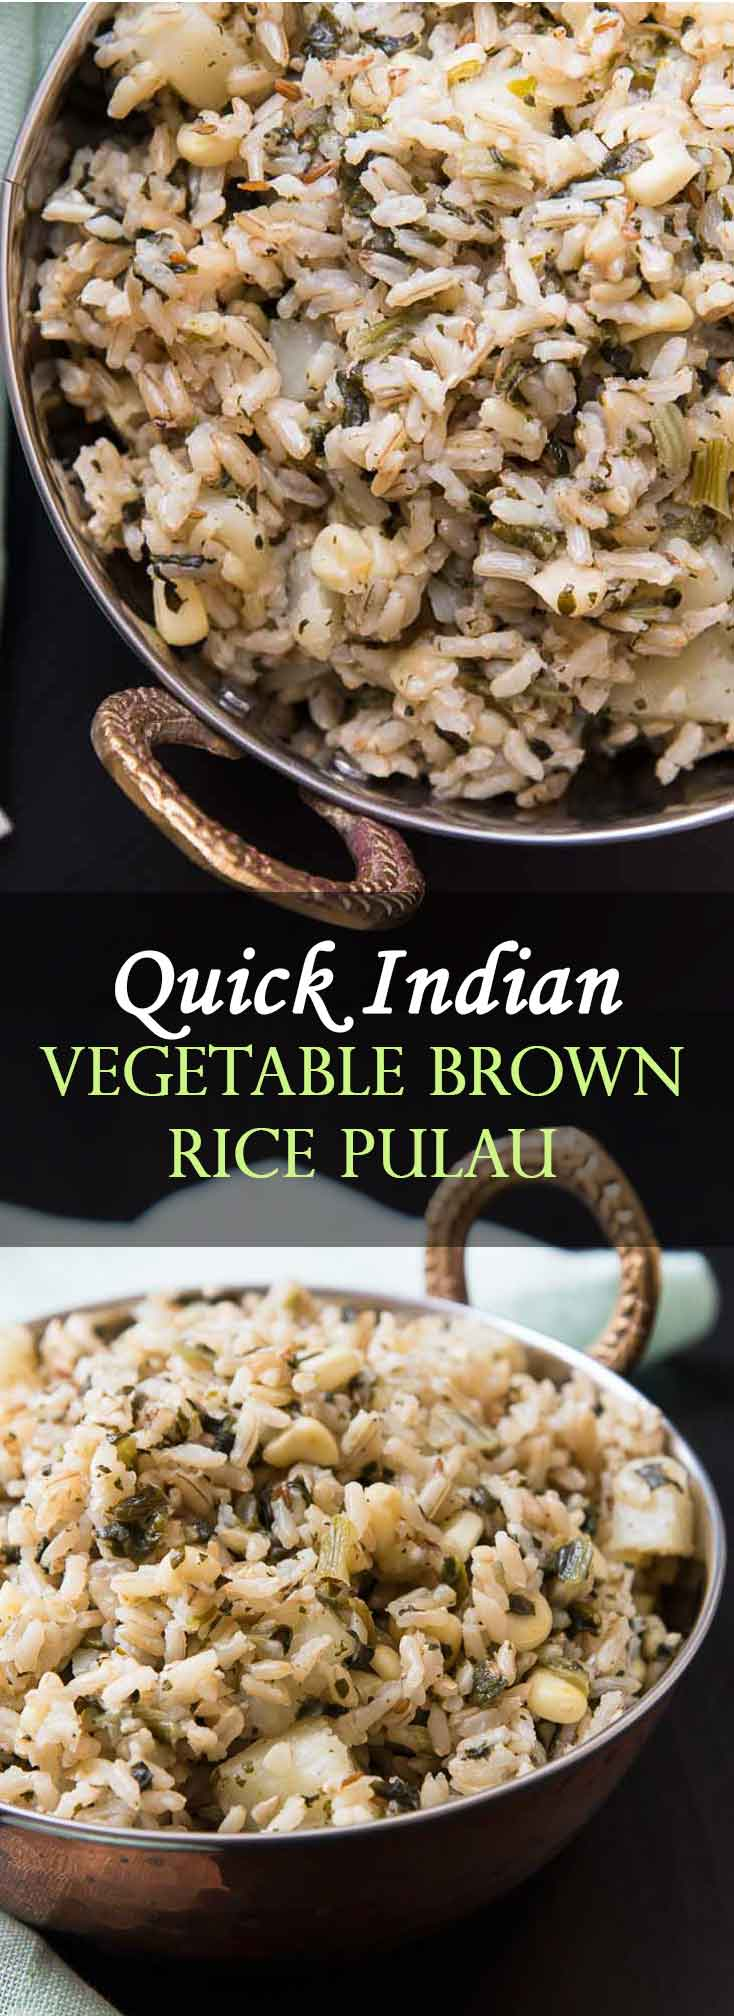 Quick Indian Brown Rice Vegetable Pulau Recipe with Spinach, Corn, & Potatoes #vegan #glutenfree | www.VegetarianGastronomy.com | Vegetarian Gastronomy